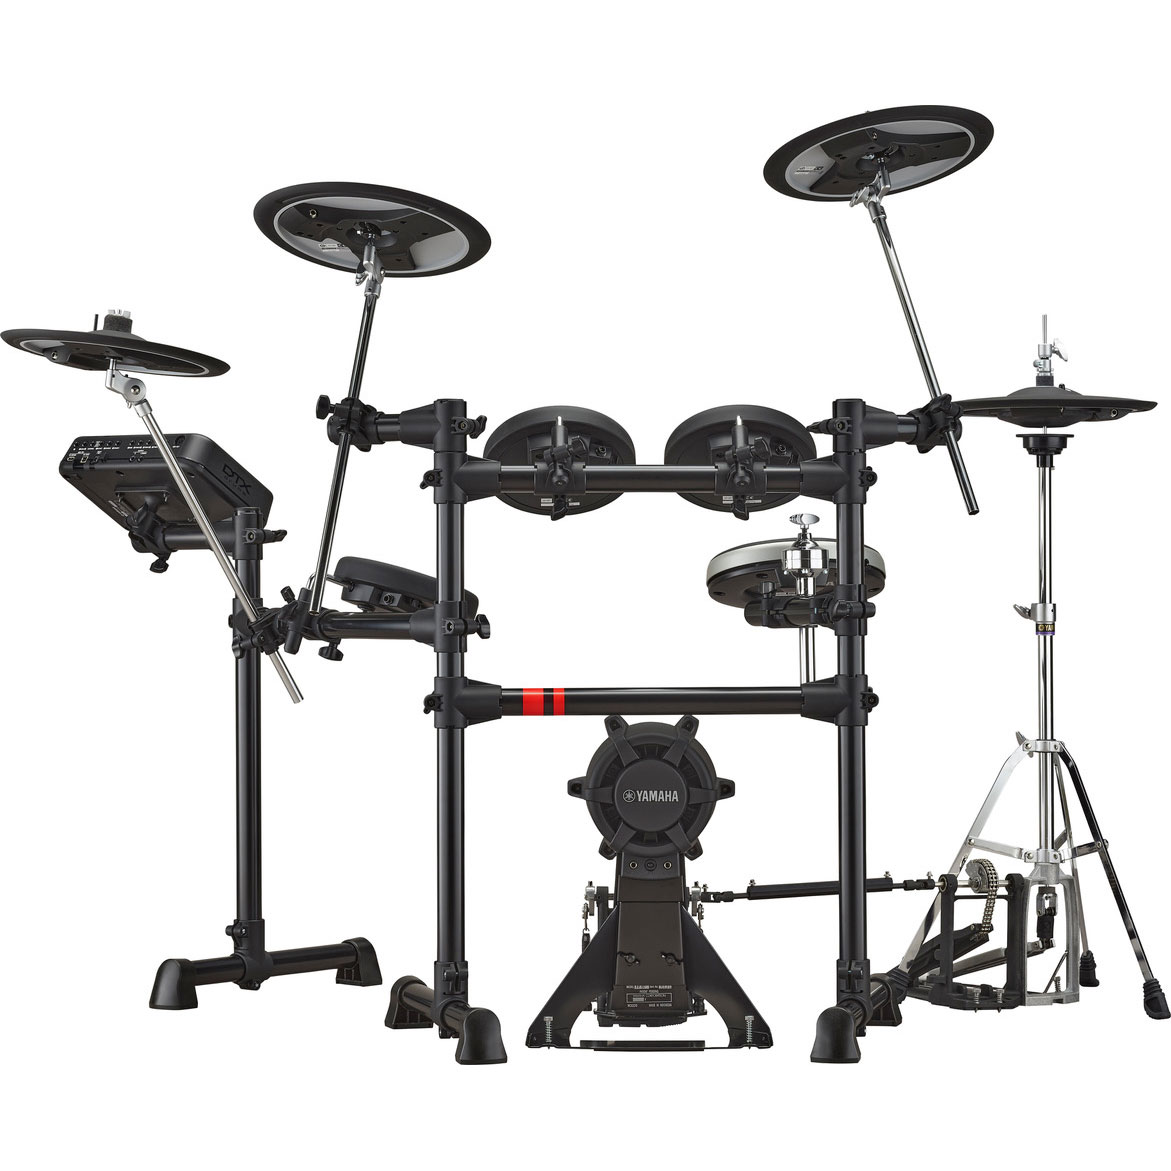 Yamaha 5-Piece Electronic Drum Set with K90 Kick Tower Pad, XP80 Snare Pad, 3 x XP70 Tom Pads, HS650A Hi Hat Trigger, and RS6 Rack